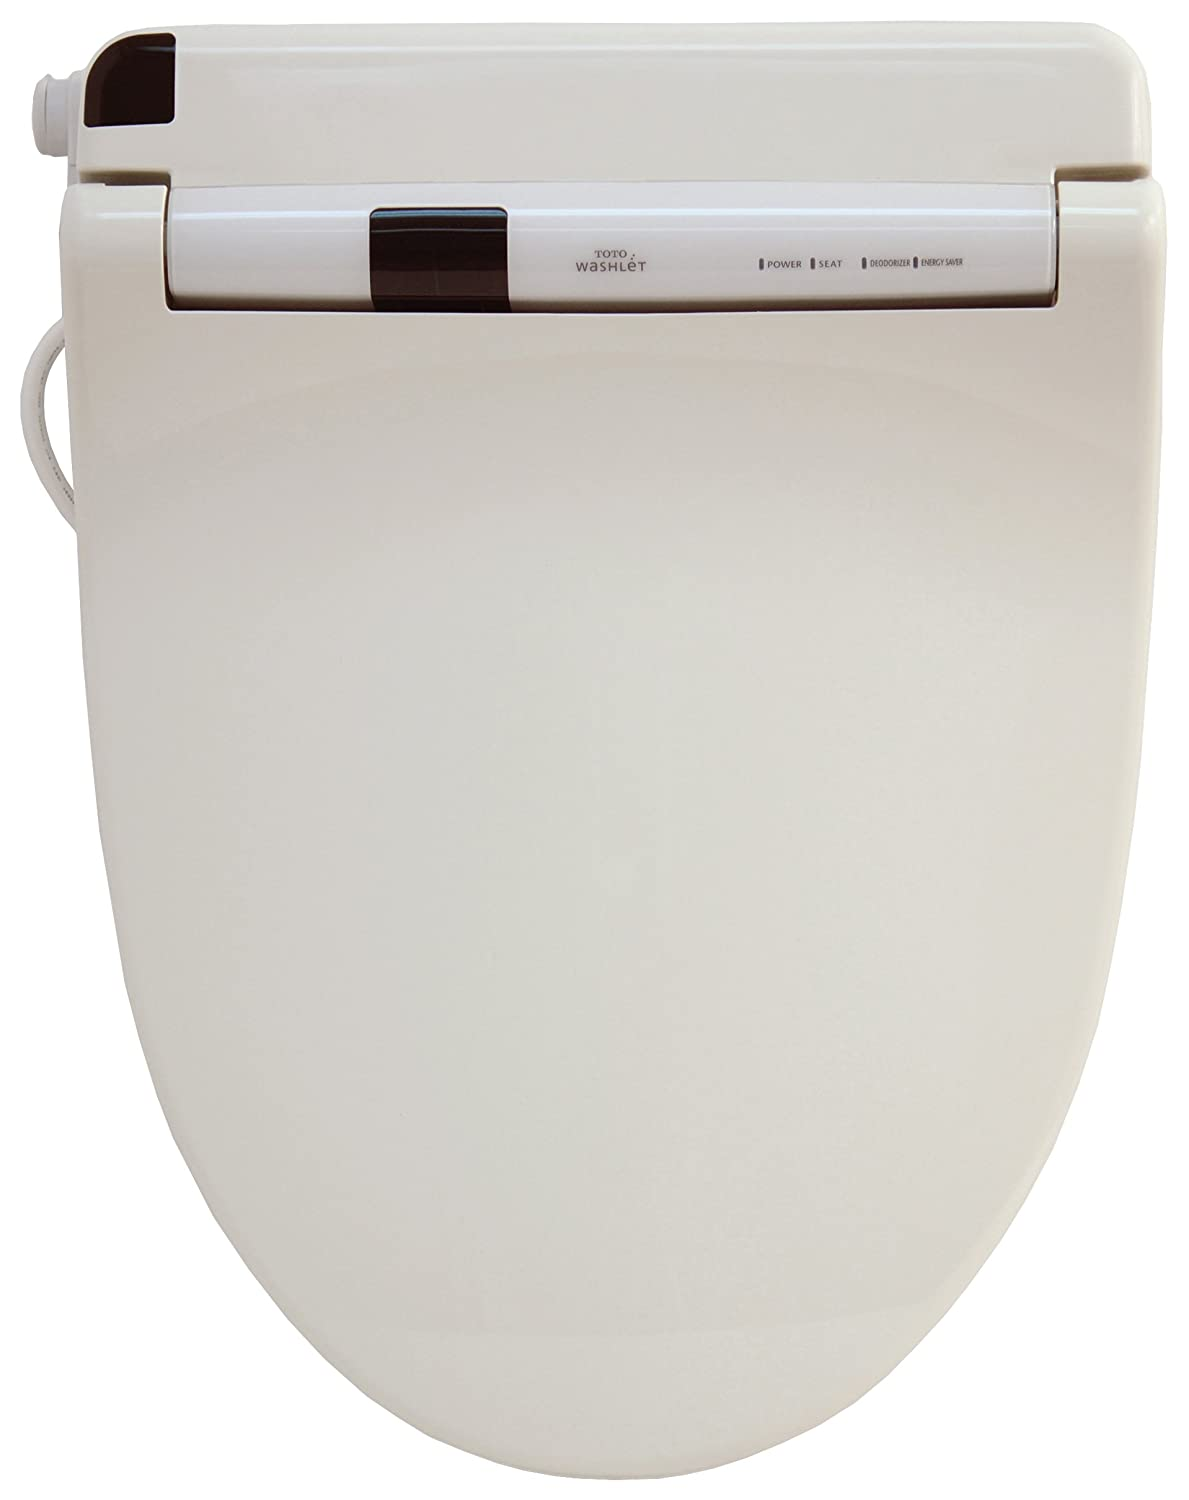 TOTO SW554-01 Washlet S300 Elongated Front Toilet Seat, Cotton White ...